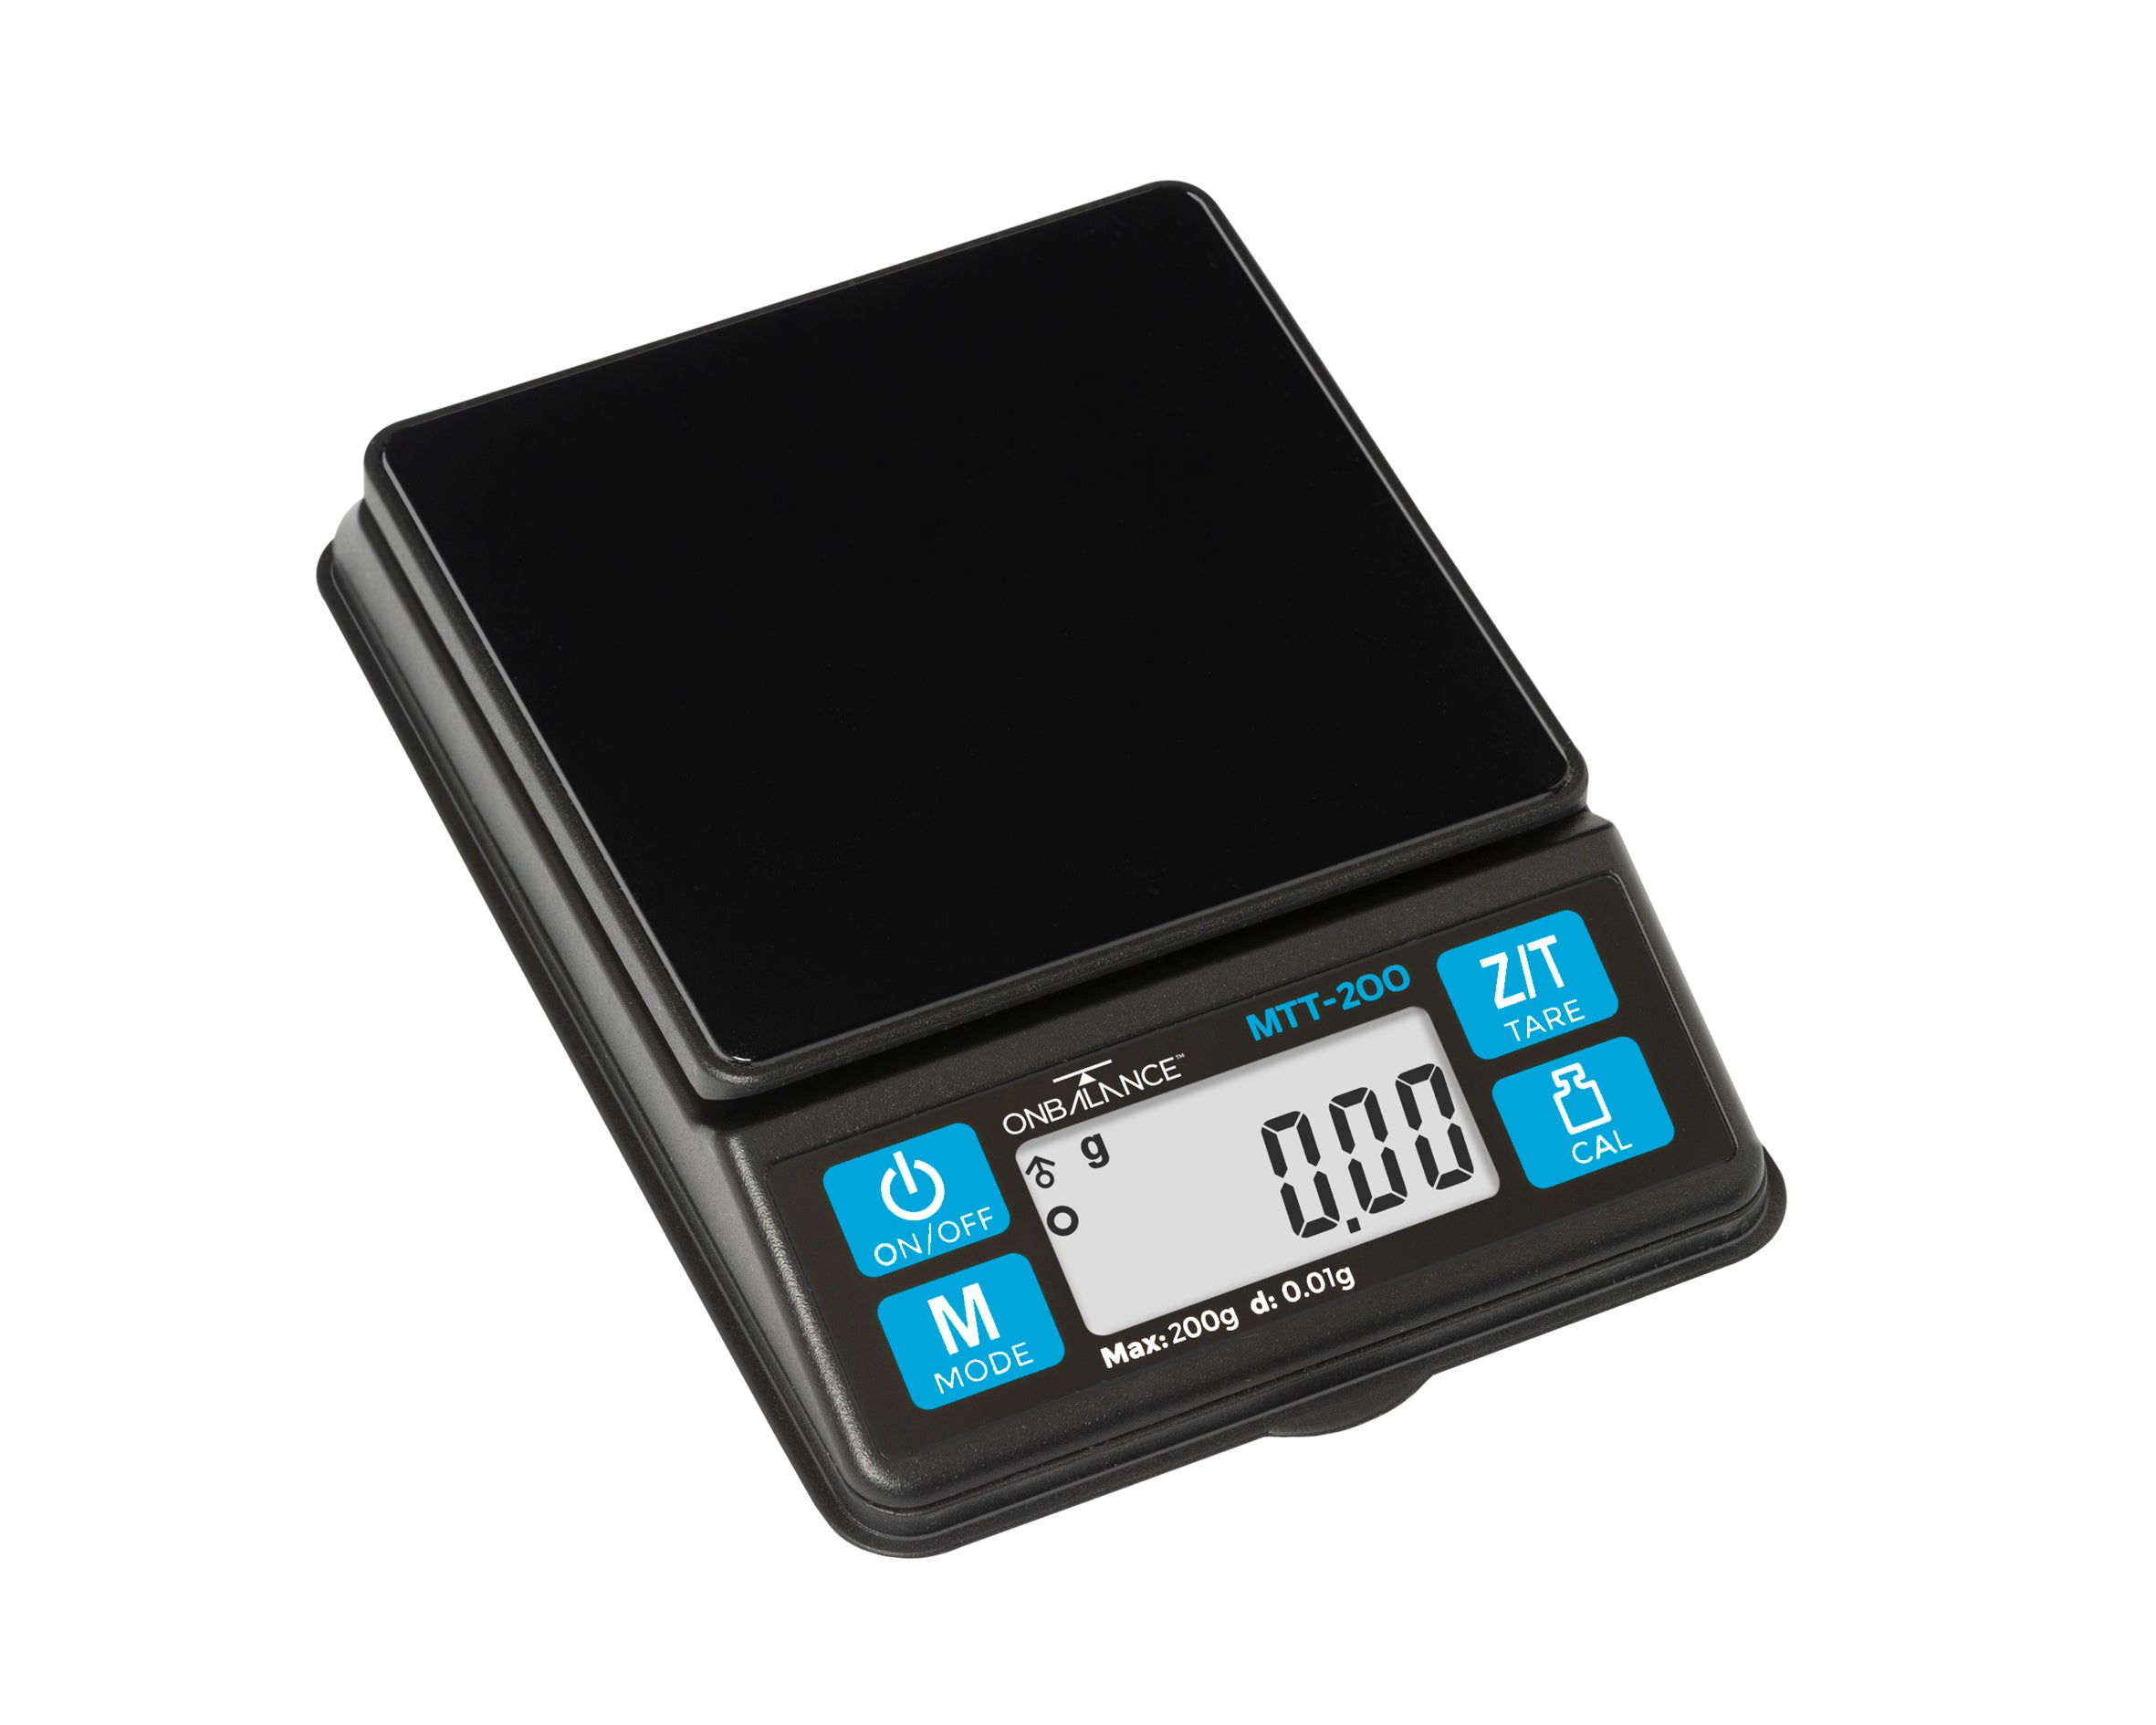 MTT-200 On Balance Mini Table Top Scale 200g x 0.01g